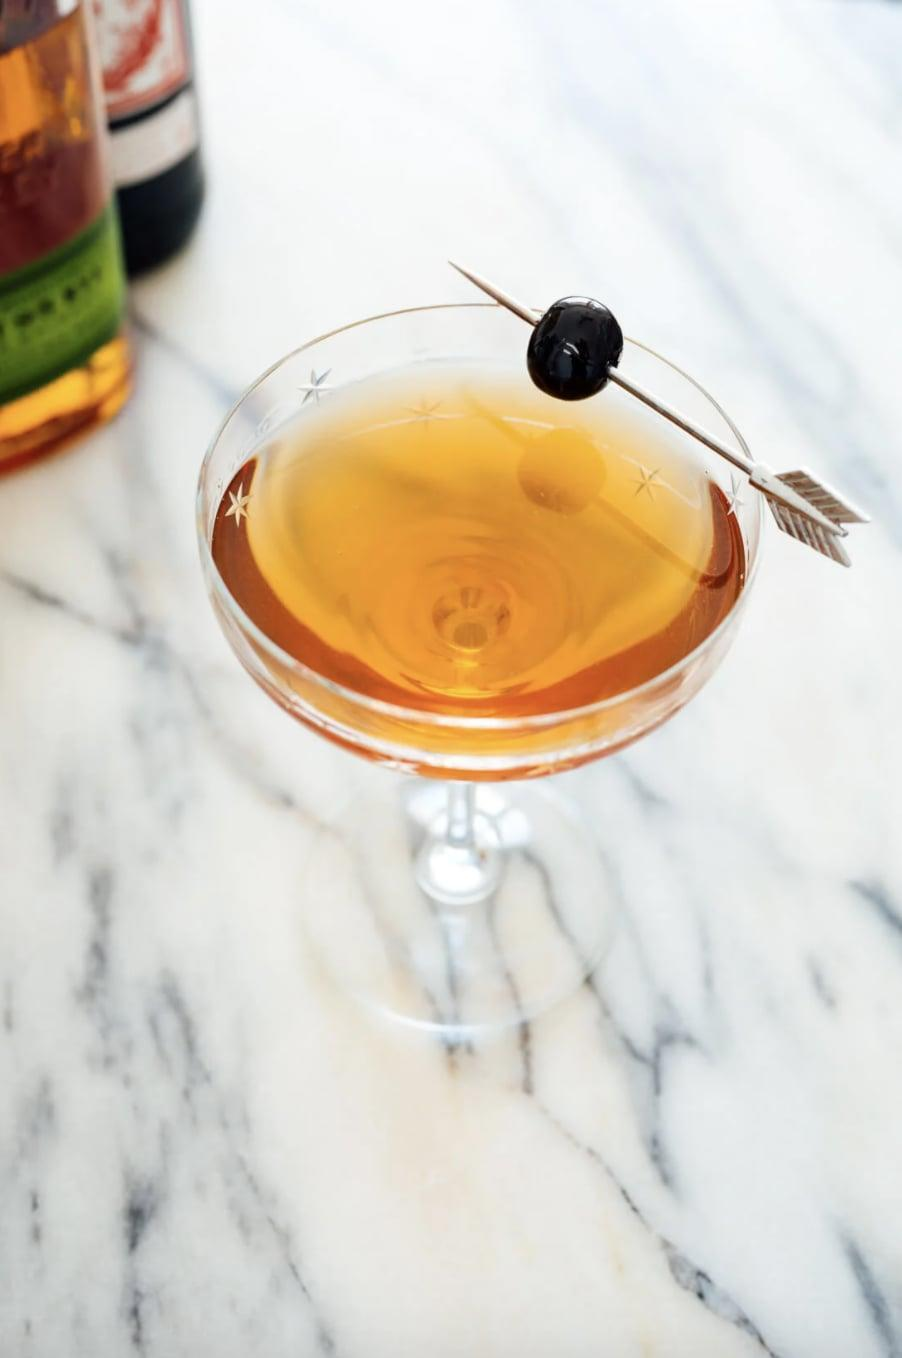 """<p>Fancy and fun, the people of Illinois know just how to make the perfect Manhattan. Made with three ingredients, this stirred drink turns every sip into a treat for your taste buds.</p> <p><strong>Get the recipe</strong>: <a href=""""https://www.popsugar.com/buy?url=https%3A%2F%2Fcookieandkate.com%2Fbest-manhattan-cocktail-recipe%2F&p_name=Manhattan&retailer=cookieandkate.com&evar1=yum%3Aus&evar9=47471653&evar98=https%3A%2F%2Fwww.popsugar.com%2Ffood%2Fphoto-gallery%2F47471653%2Fimage%2F47474238%2FIllinois-Manhattan&list1=cocktails%2Cdrinks%2Calcohol%2Crecipes&prop13=api&pdata=1"""" class=""""link rapid-noclick-resp"""" rel=""""nofollow noopener"""" target=""""_blank"""" data-ylk=""""slk:Manhattan"""">Manhattan</a></p>"""